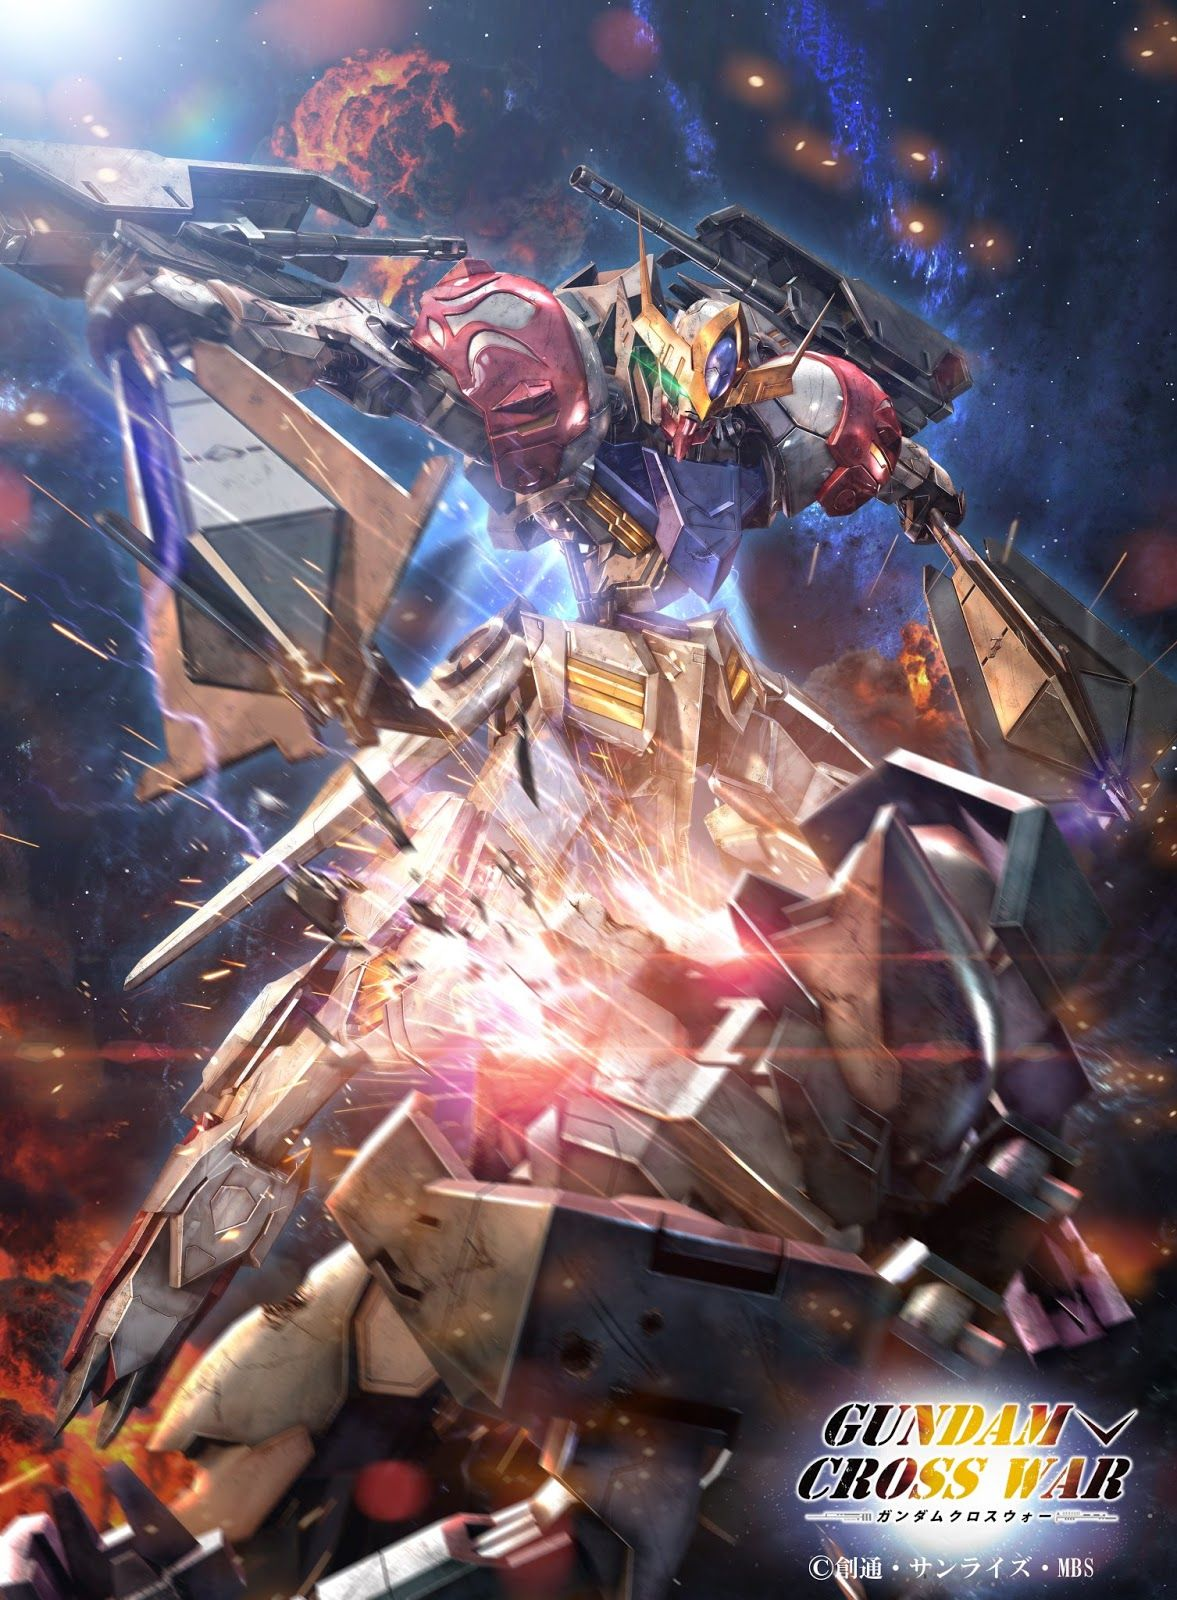 Submitted By Jr Suzuki Via Email Fan Used Gundam Crosswar Arts For These Mg Gundam Iron Blooded Orphans Gundam Iron Blooded Orphans Gundam Gundam Wallpapers